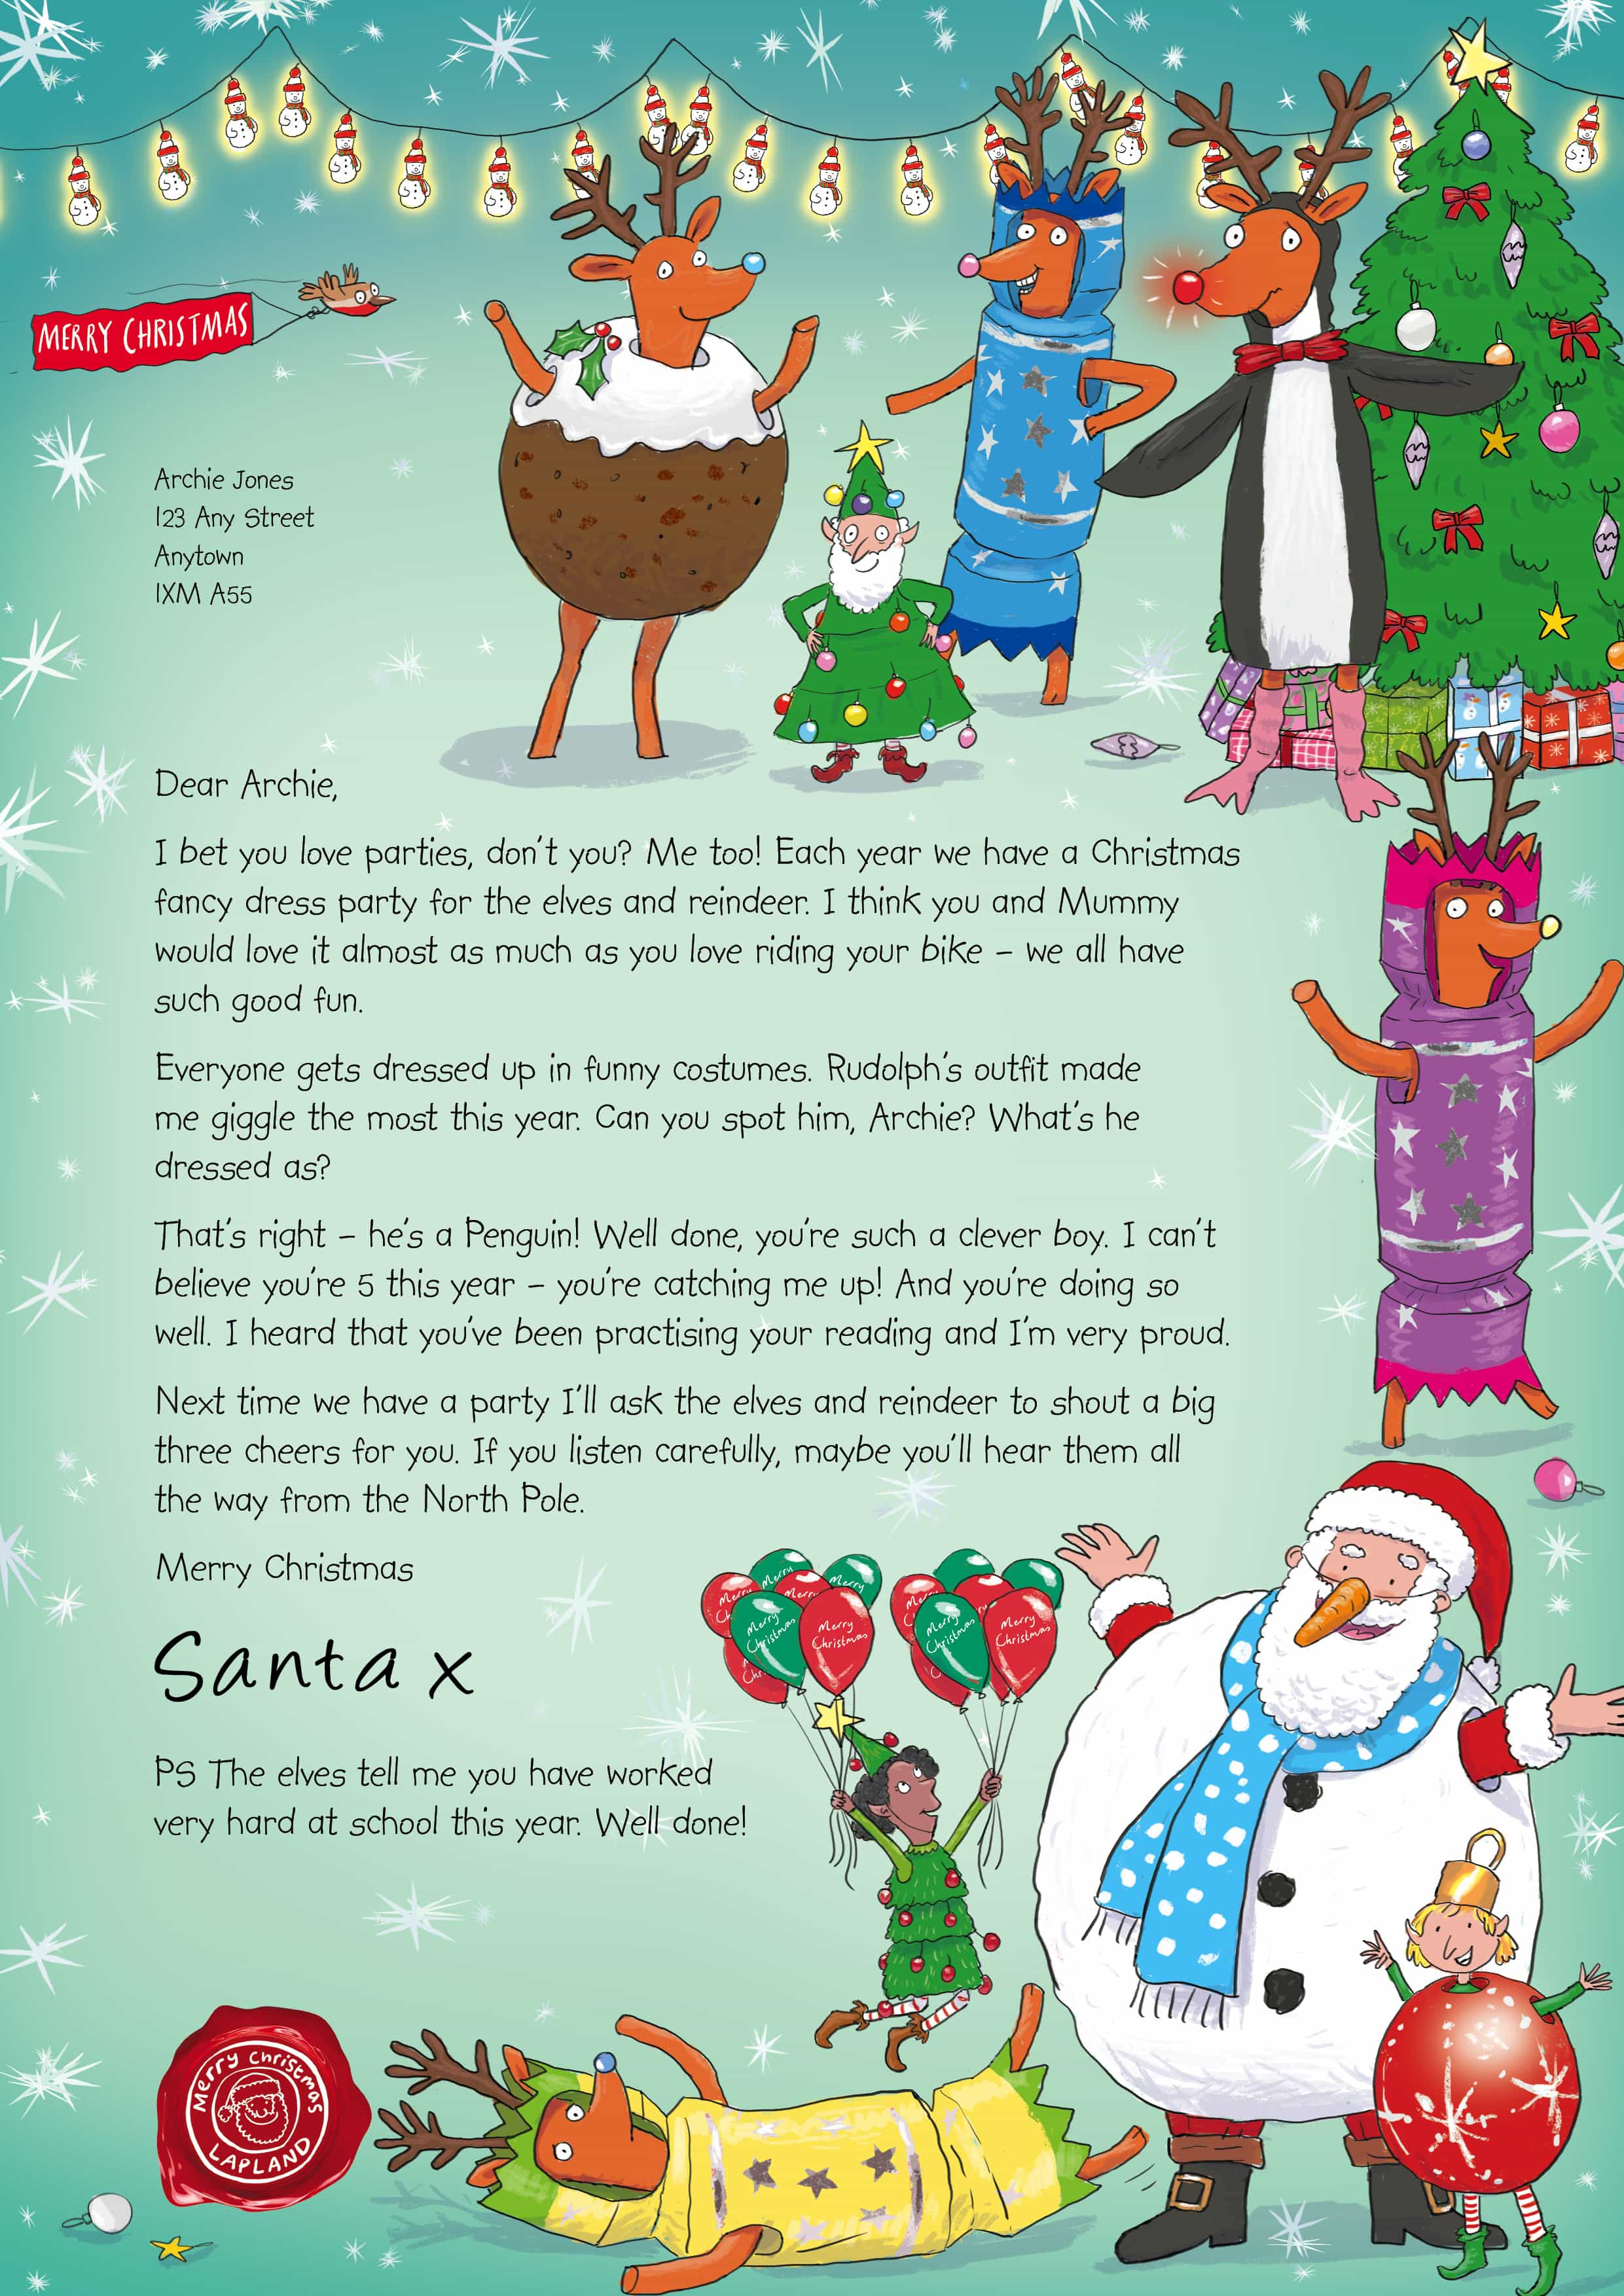 can request your letter from santa either at at www.nspcc.org.uk/santa ...